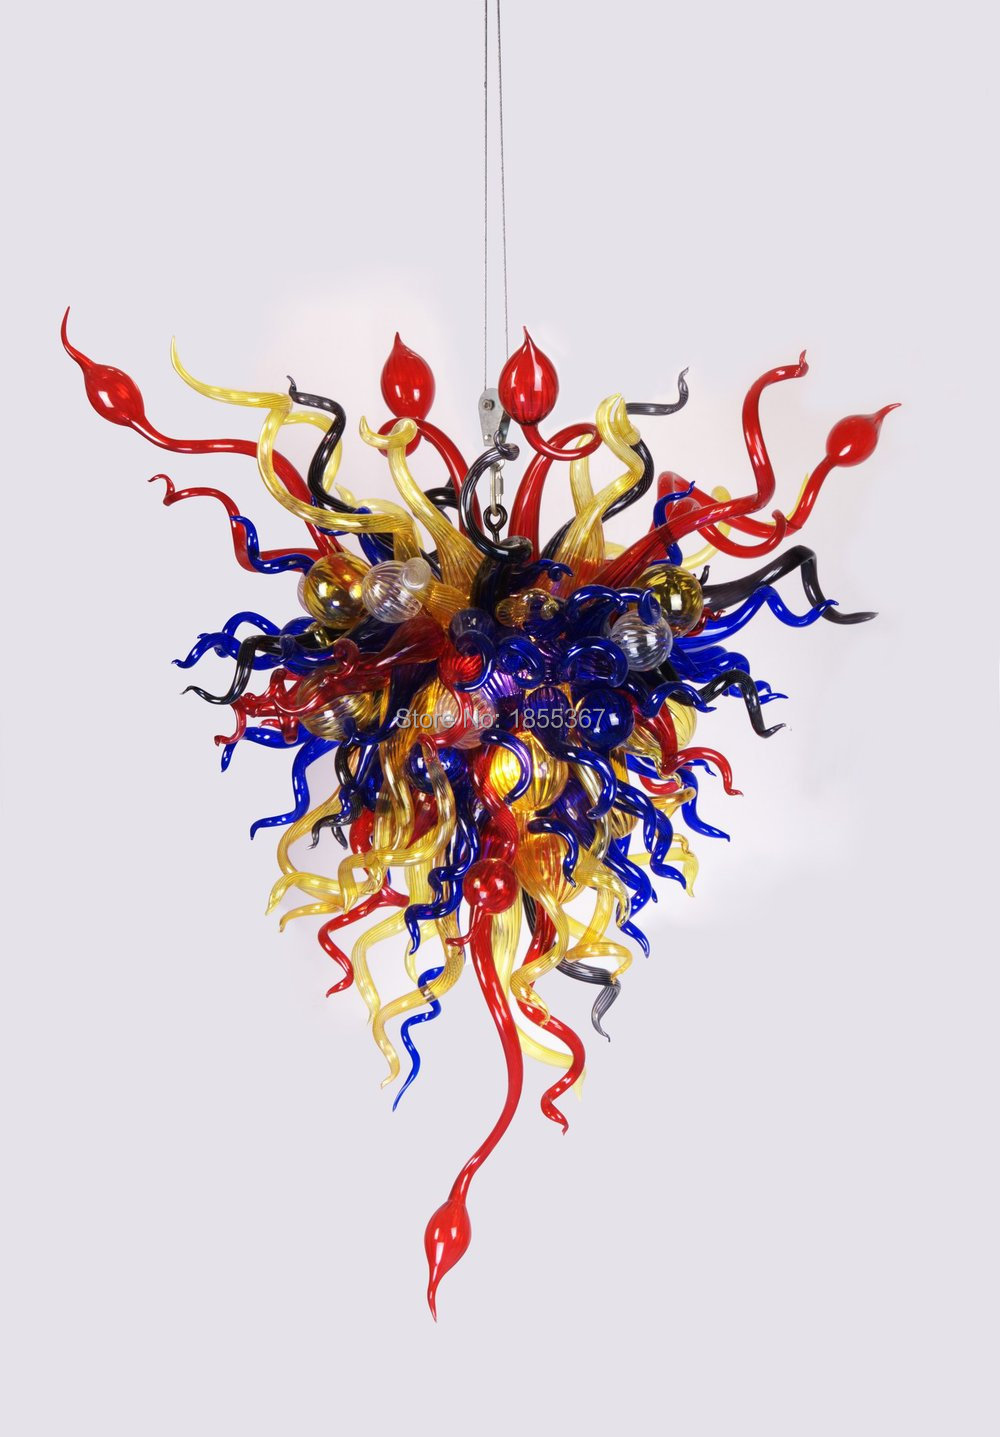 Free shipping pure handmade elegant lamp cheap crystal colored glass free shipping pure handmade elegant lamp cheap crystal colored glass chandelier in chandeliers from lights lighting on aliexpress alibaba group aloadofball Image collections